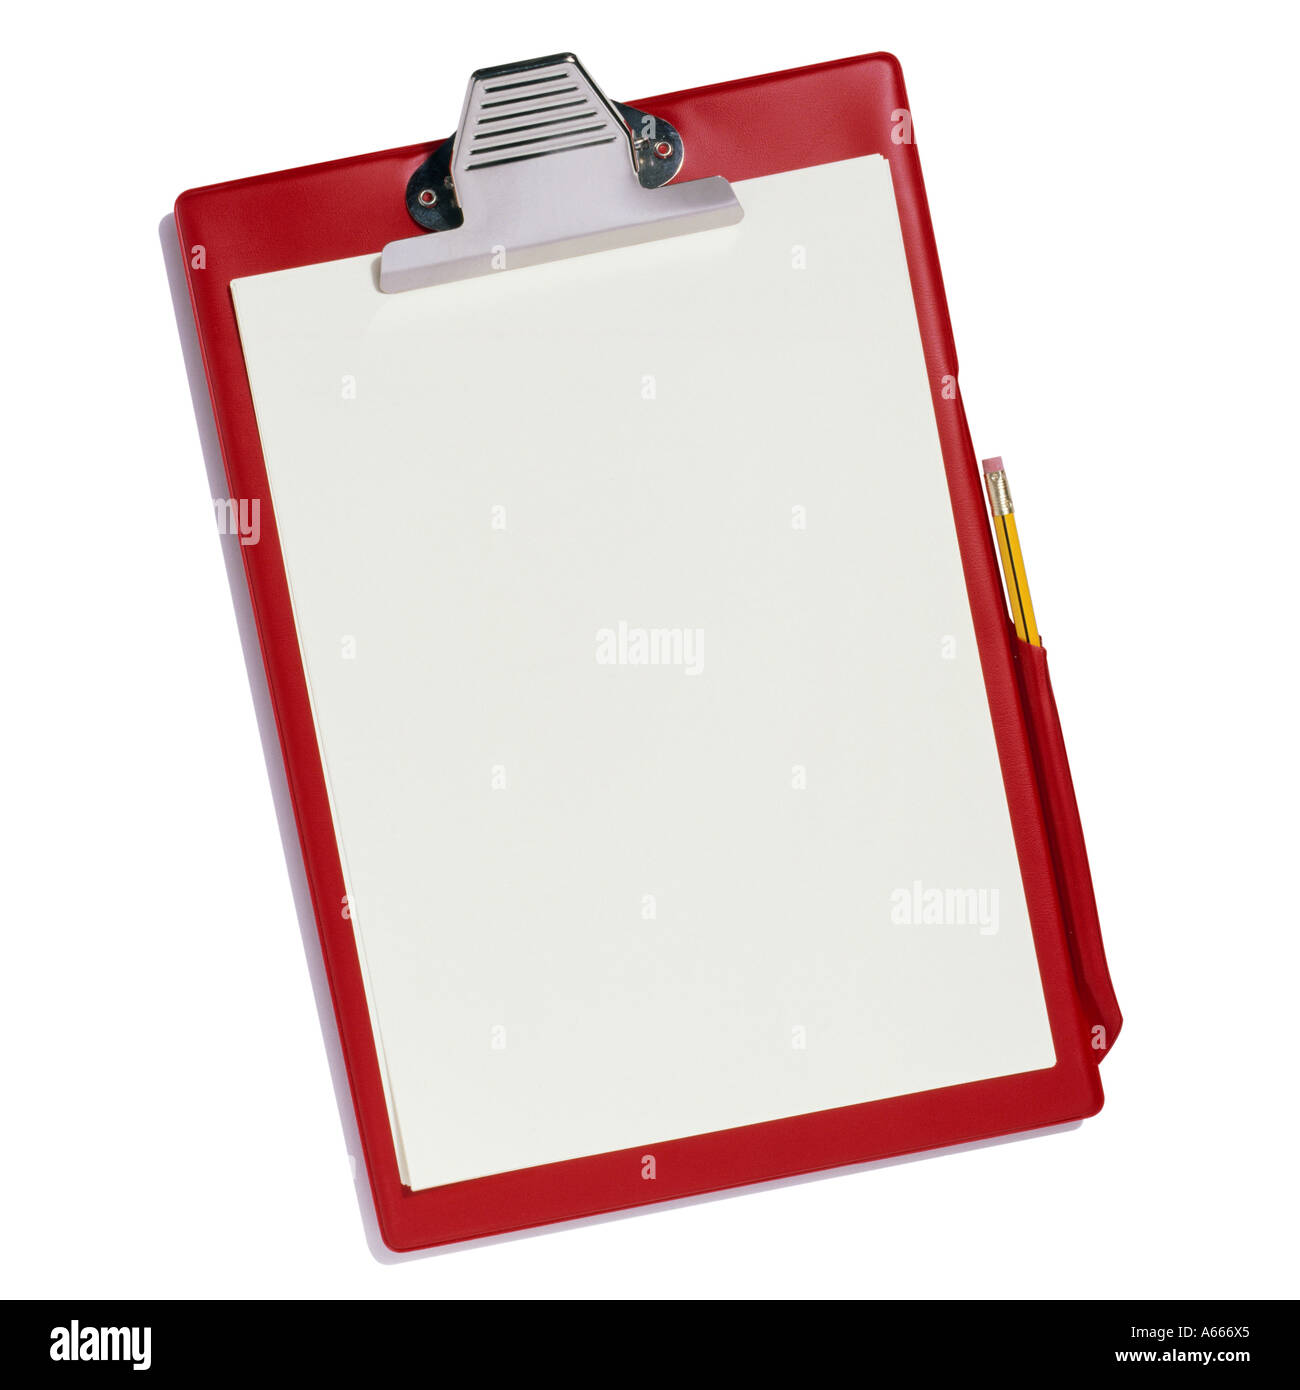 A red clipboard with plain paper and a yellow pencil - Stock Image